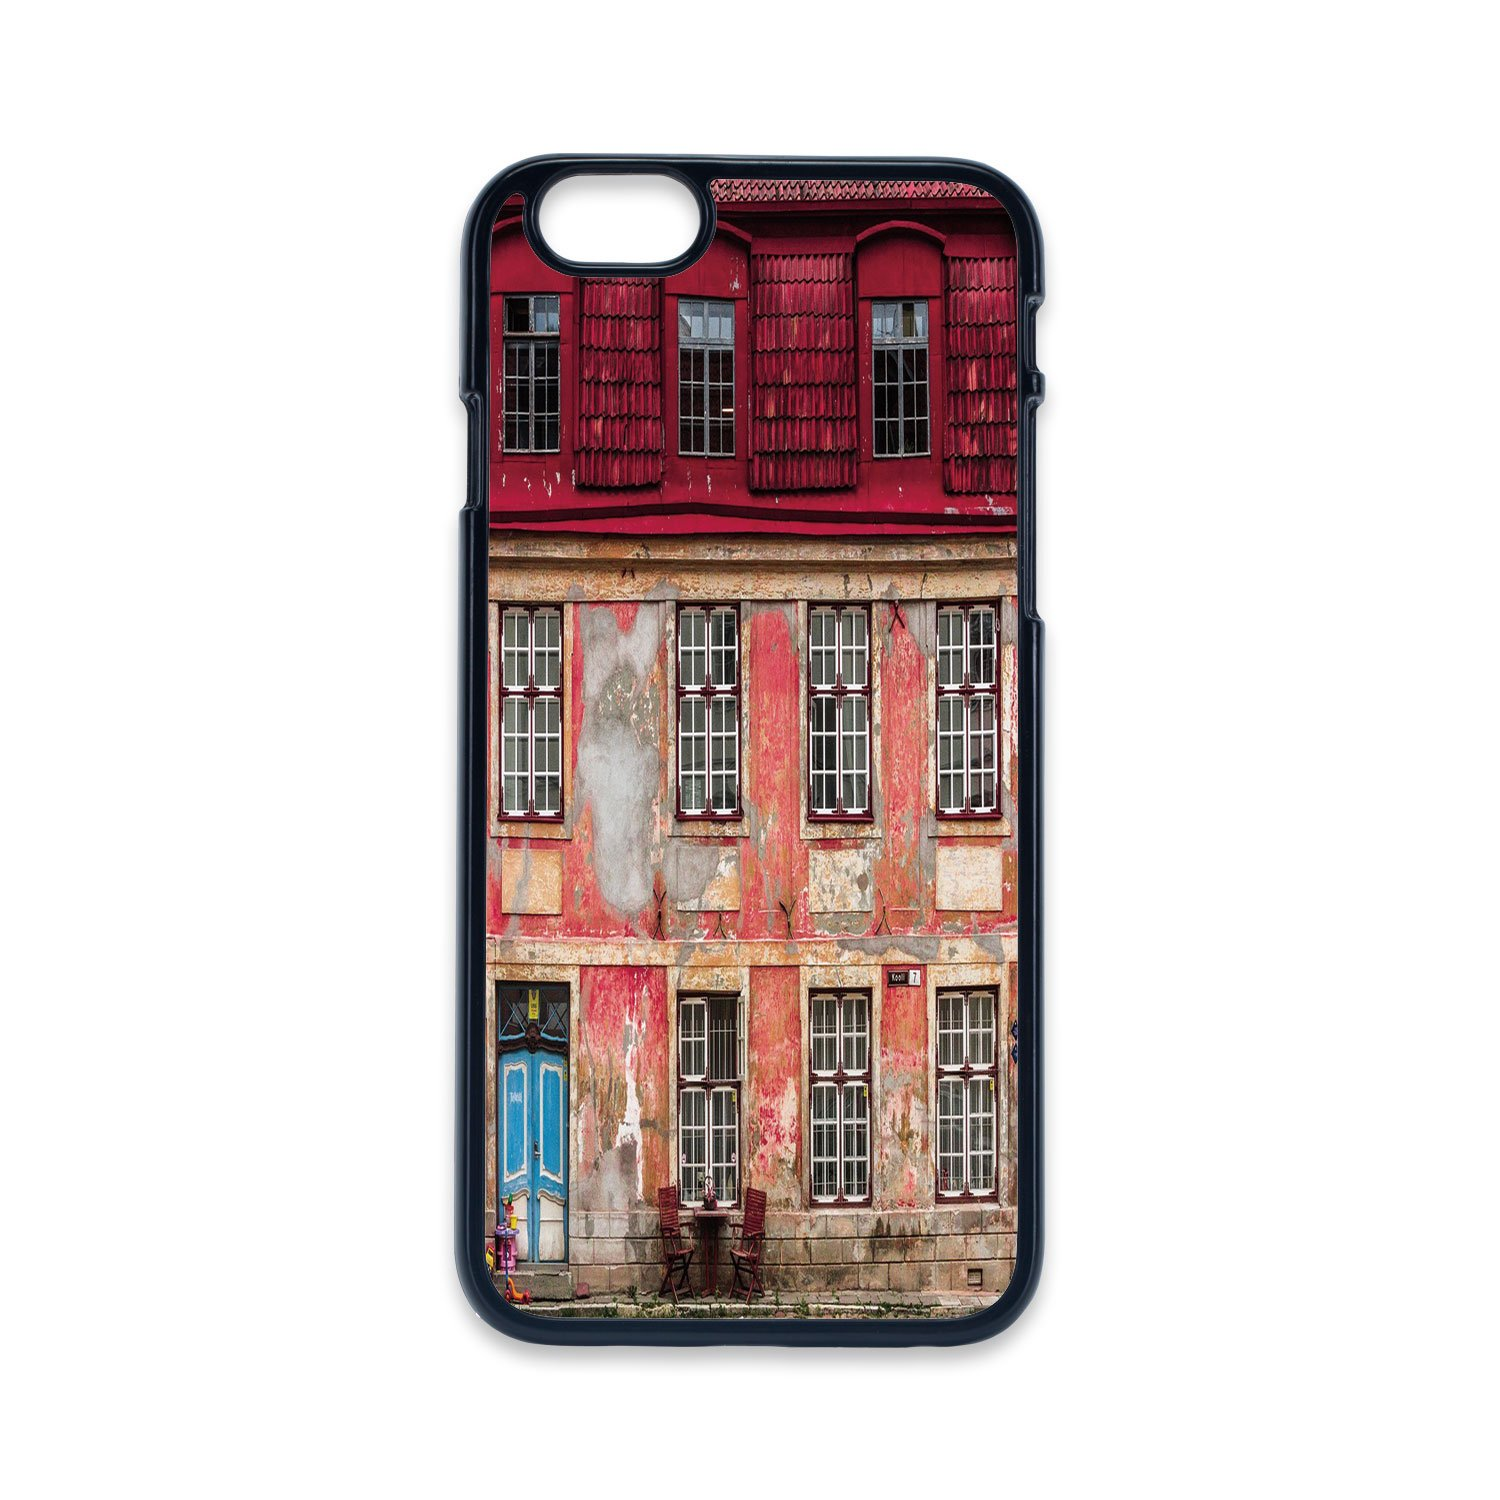 d554e1cfce9 Phone Case Compatible with iPhone5 iPhone5s 2D Print Black Edge,Urban,Old  Aged Building in Ancient City Tallinn Estonia Antique Structure Windows  Decorative ...